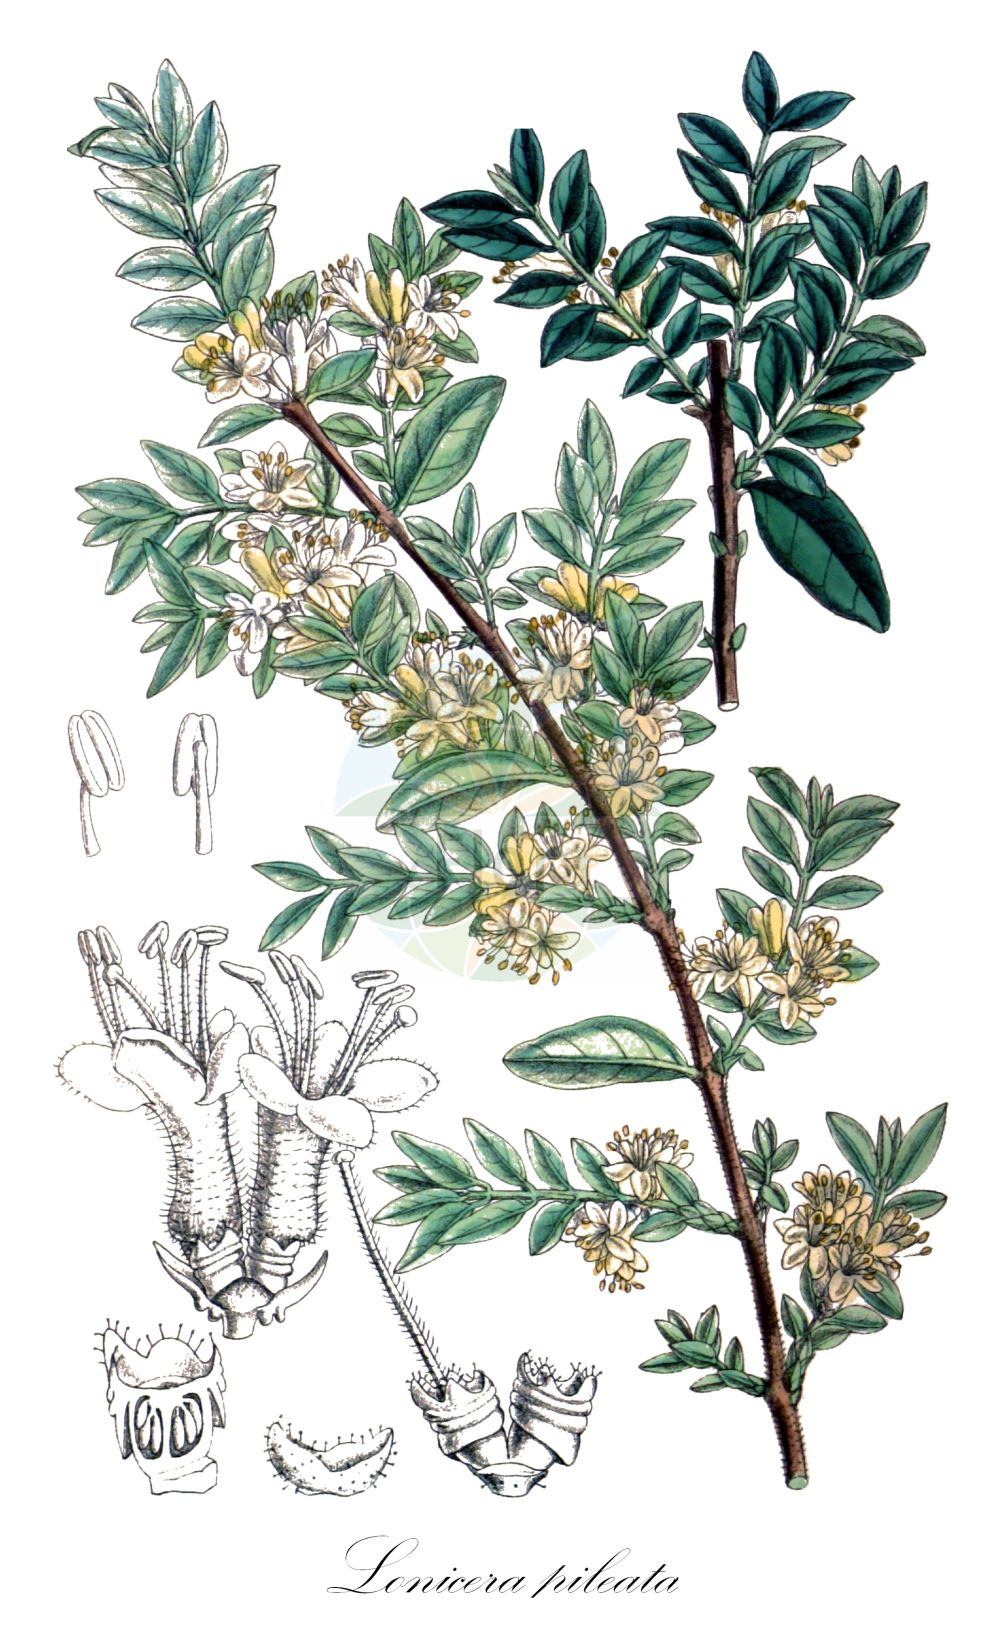 Historische Abbildung von Lonicera pileata. Das Bild zeigt Blatt, Bluete, Frucht und Same. ---- Historical Drawing of Lonicera pileata.The image is showing leaf, flower, fruit and seed.(Lonicera pileata,Lonicera,Heckenkirsche,Honeysuckle,Caprifoliaceae,Geissblattgewaechse,Honeysuckle family,Blatt,Bluete,Frucht,Same,leaf,flower,fruit,seed,Curtis Botanical Magazine (1787f))